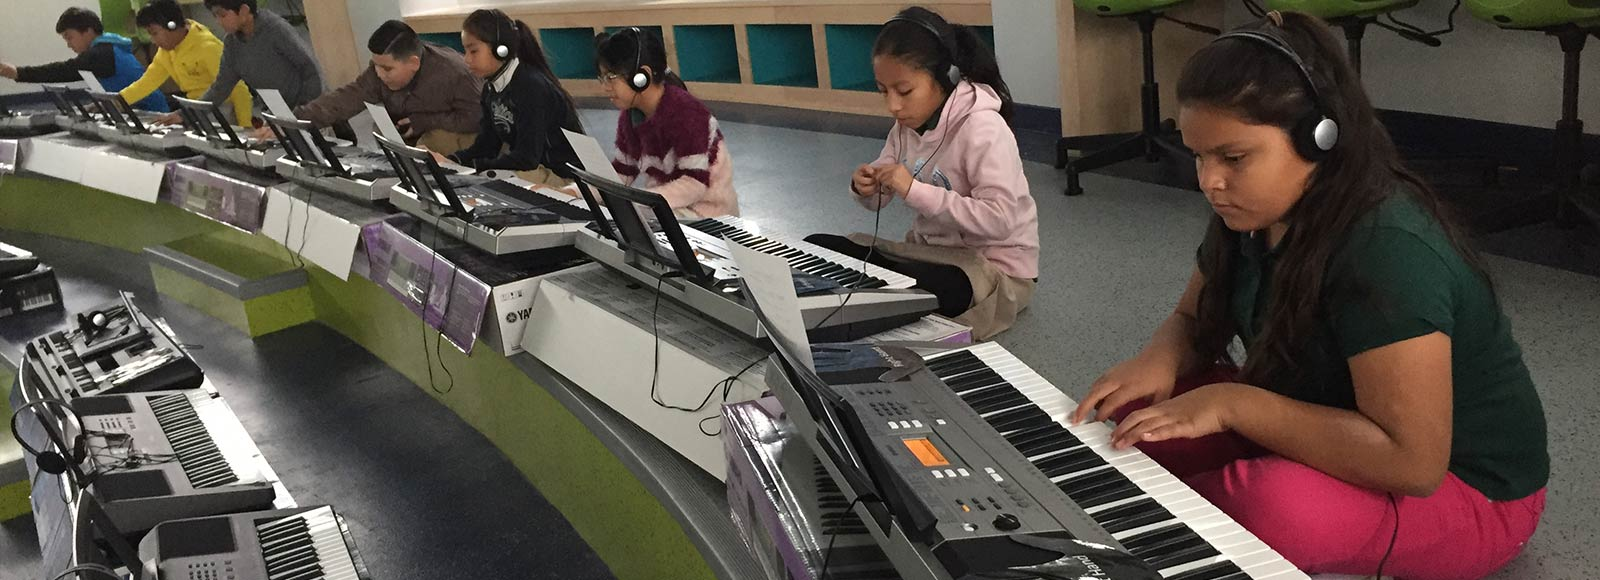 Marie Reed Elementary School students playing Music